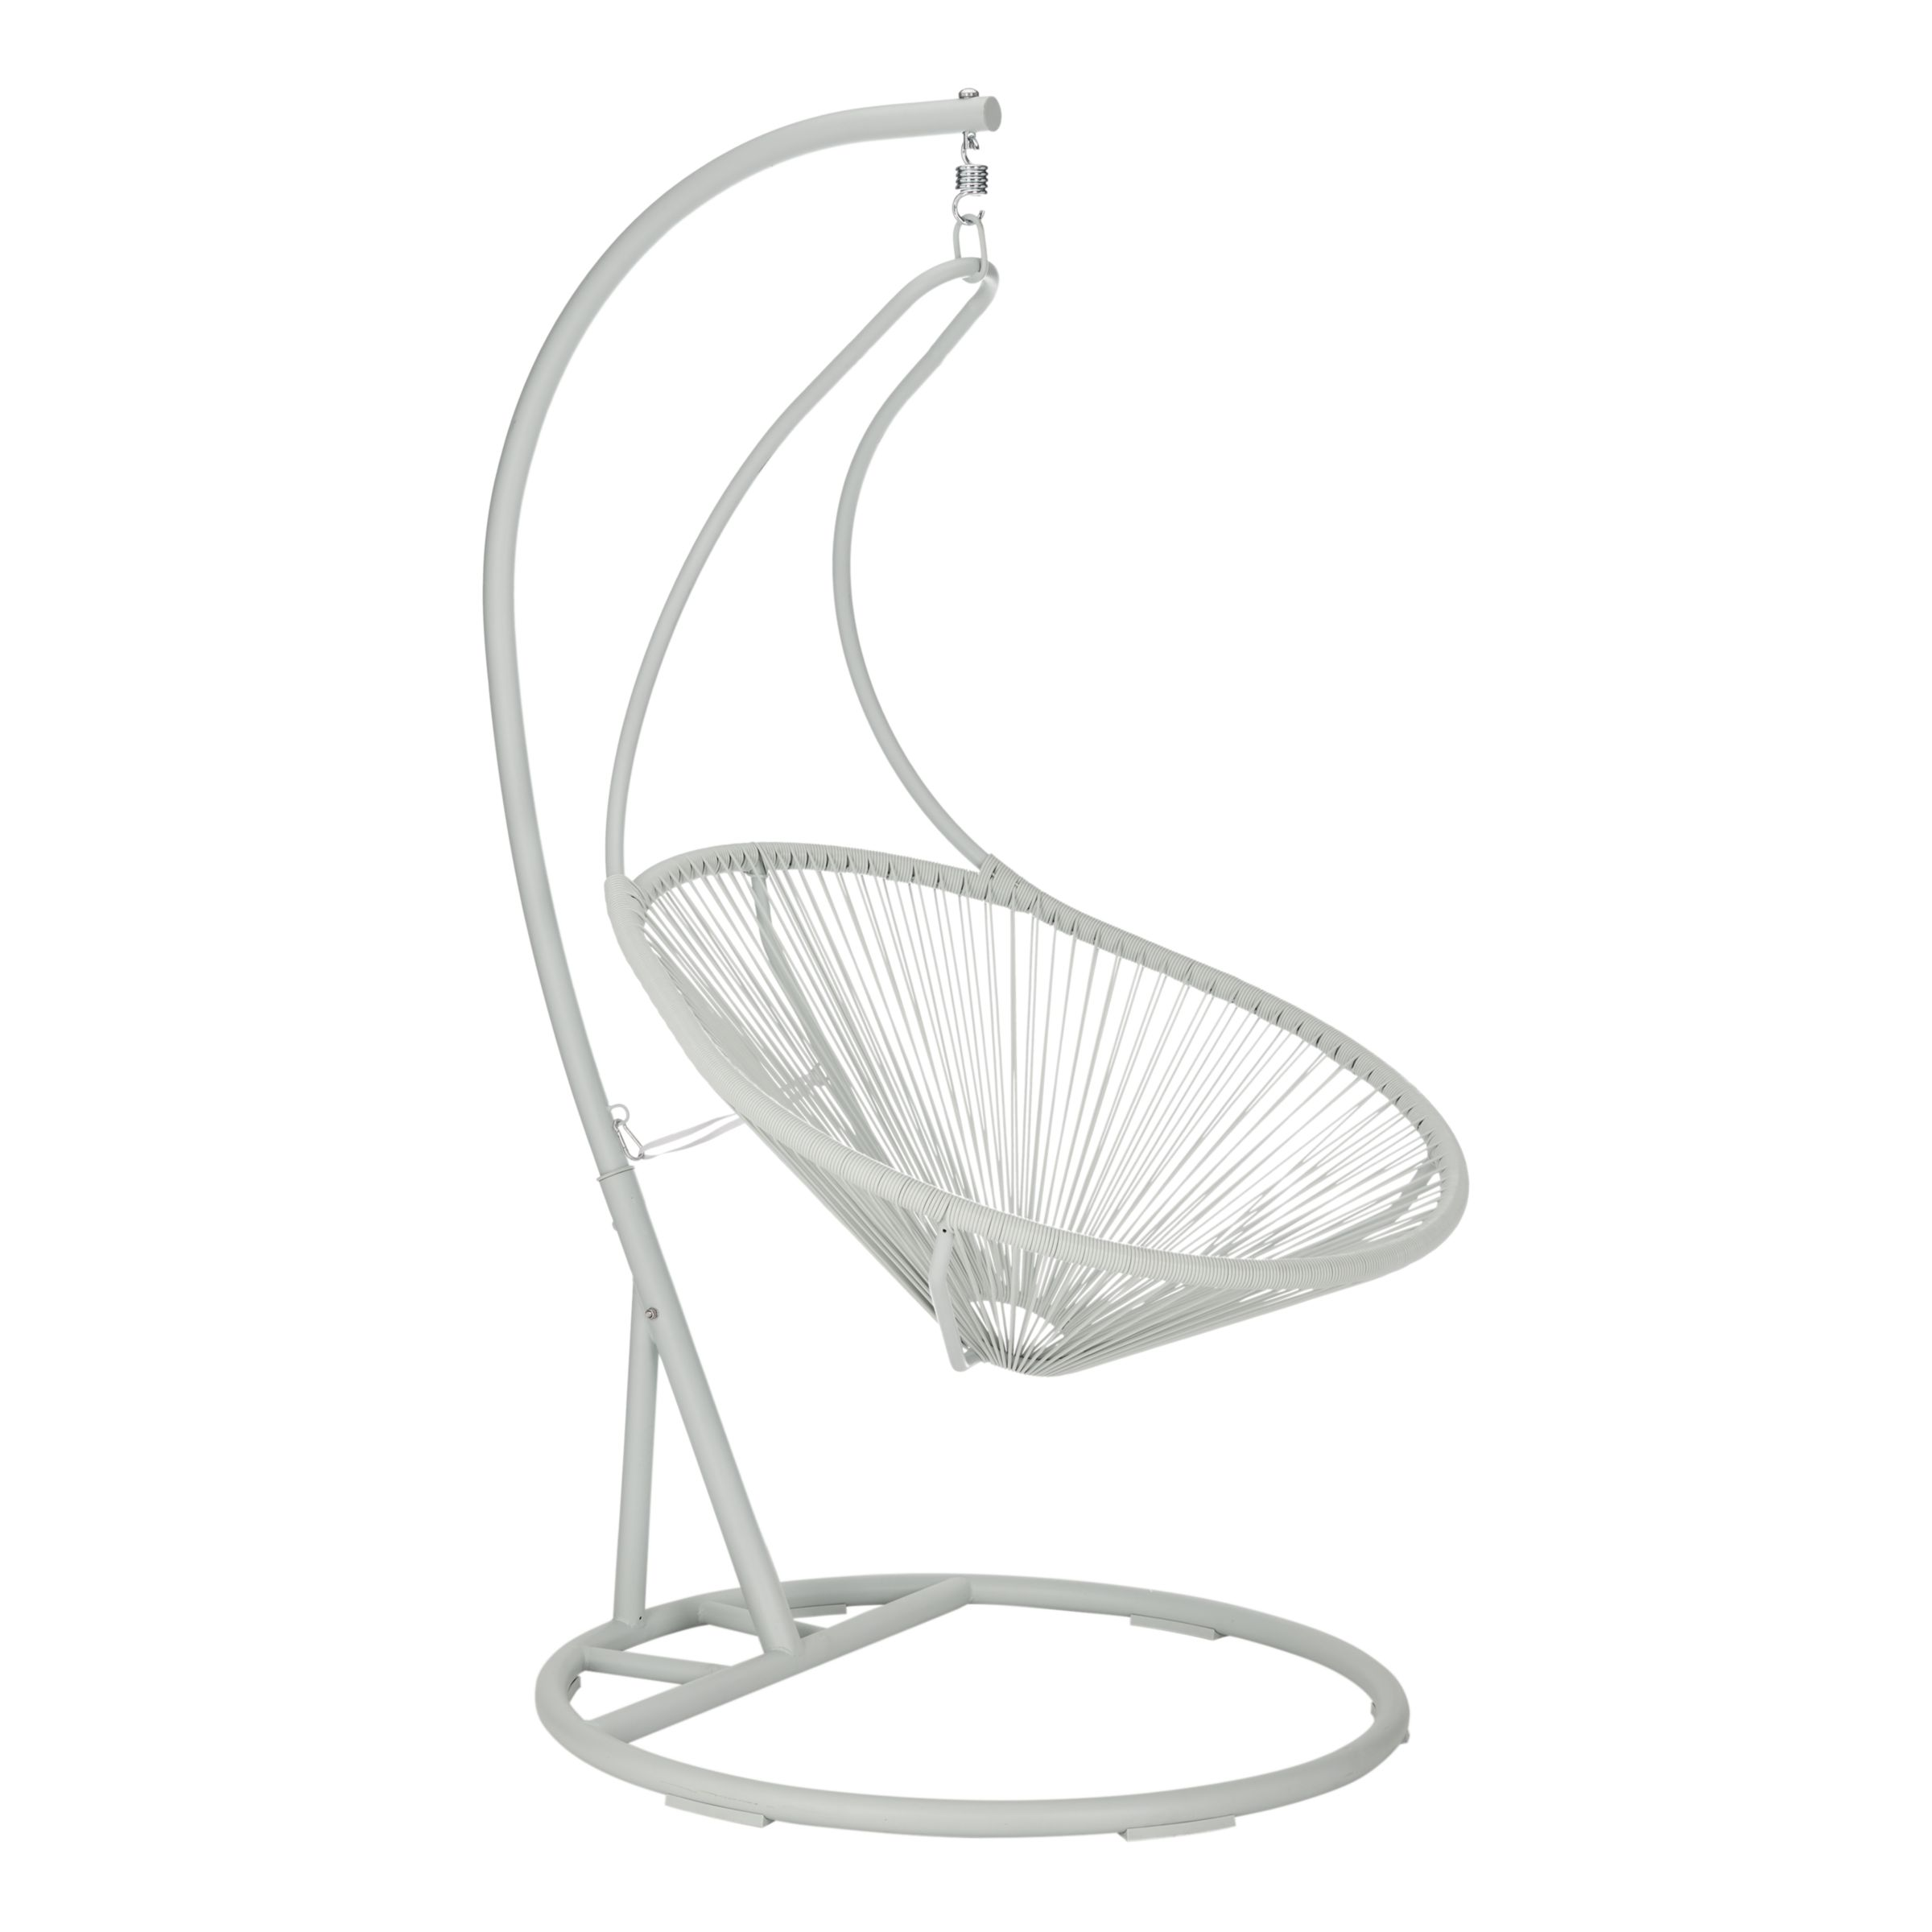 swing chair drawing vanity chairs for bathroom house by john lewis salsa outdoor seat at partners buyhouse french grey online johnlewis com